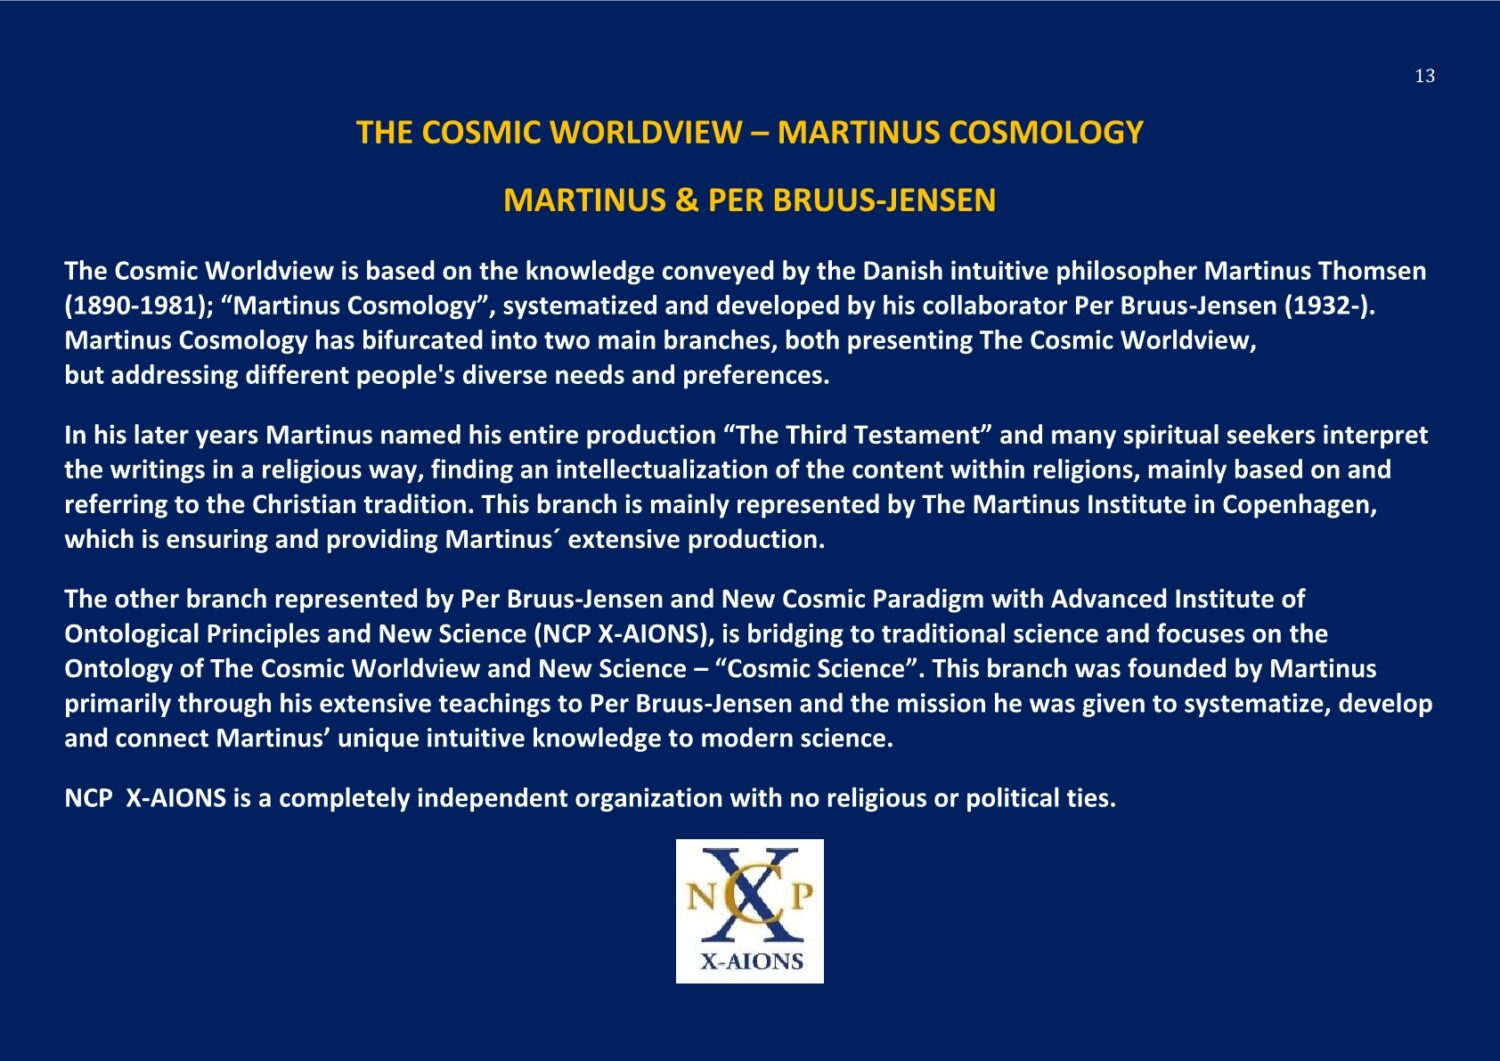 The Cosmic Worldview Martinus Cosmology NCP X-AIONS New Cosmic Paradigm